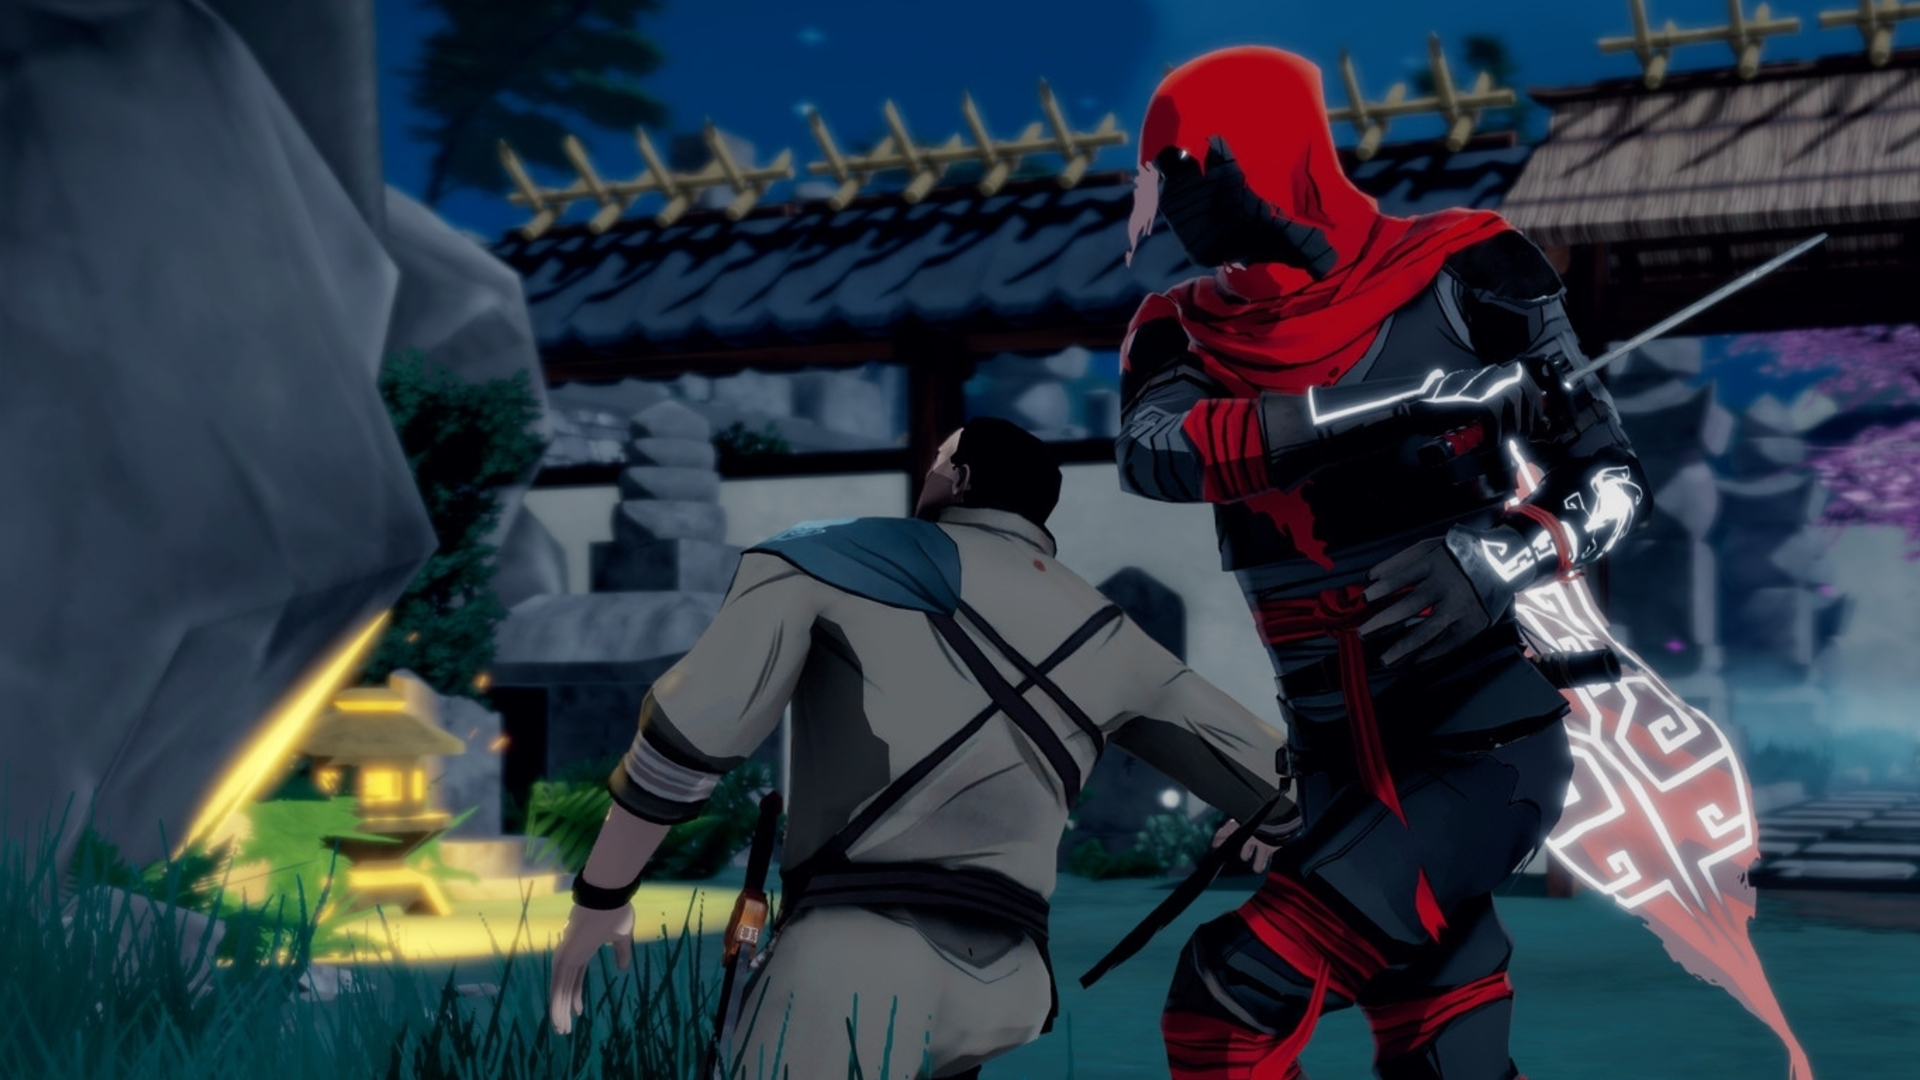 Stylish supernatural stealth game Aragami is heading to Switch next year